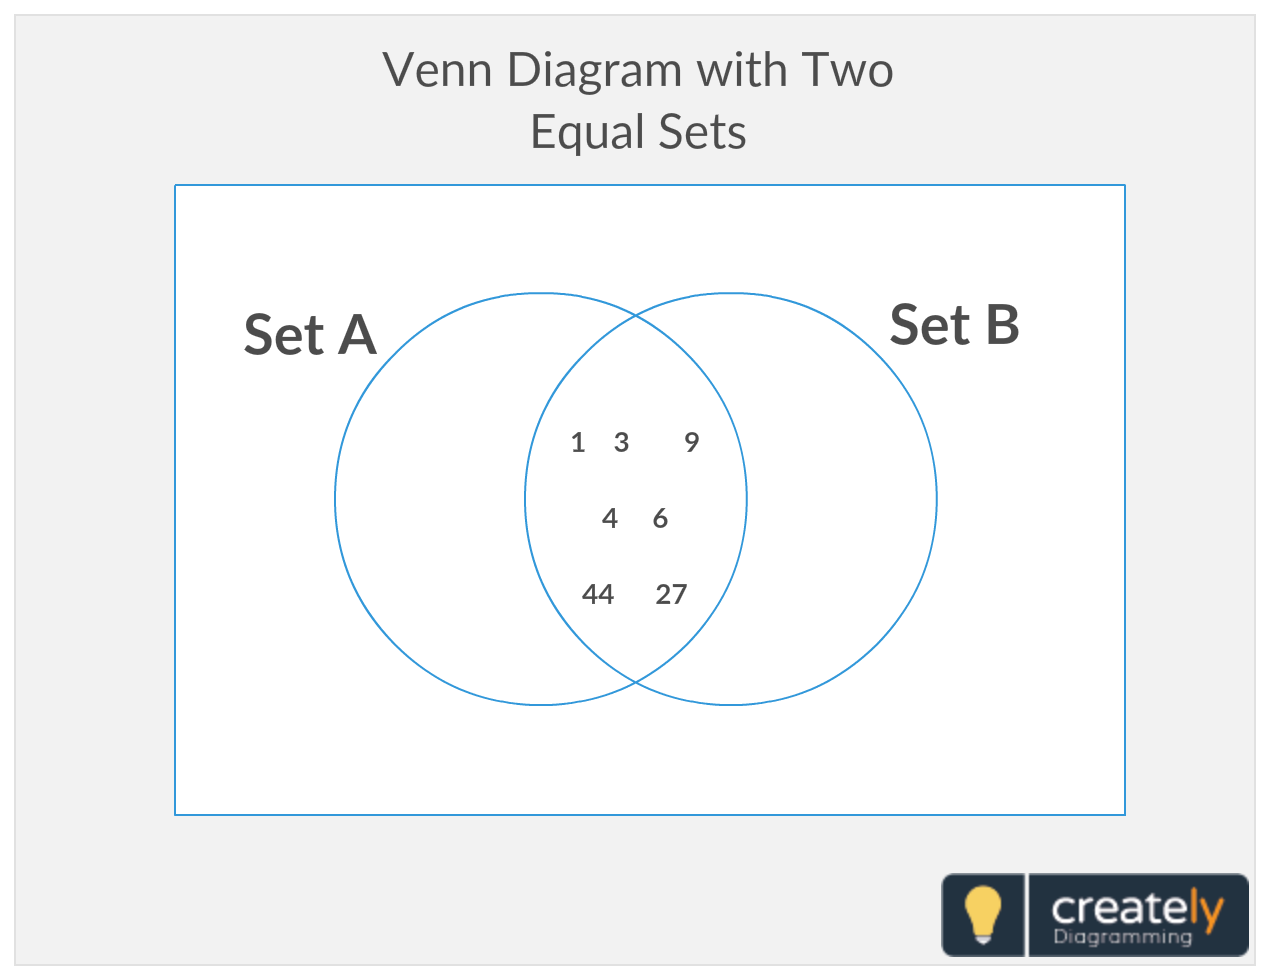 venn diagram with two equal sets - a venn diagram is a diagram that shows  all possible logical relations between a finite collection of different  sets